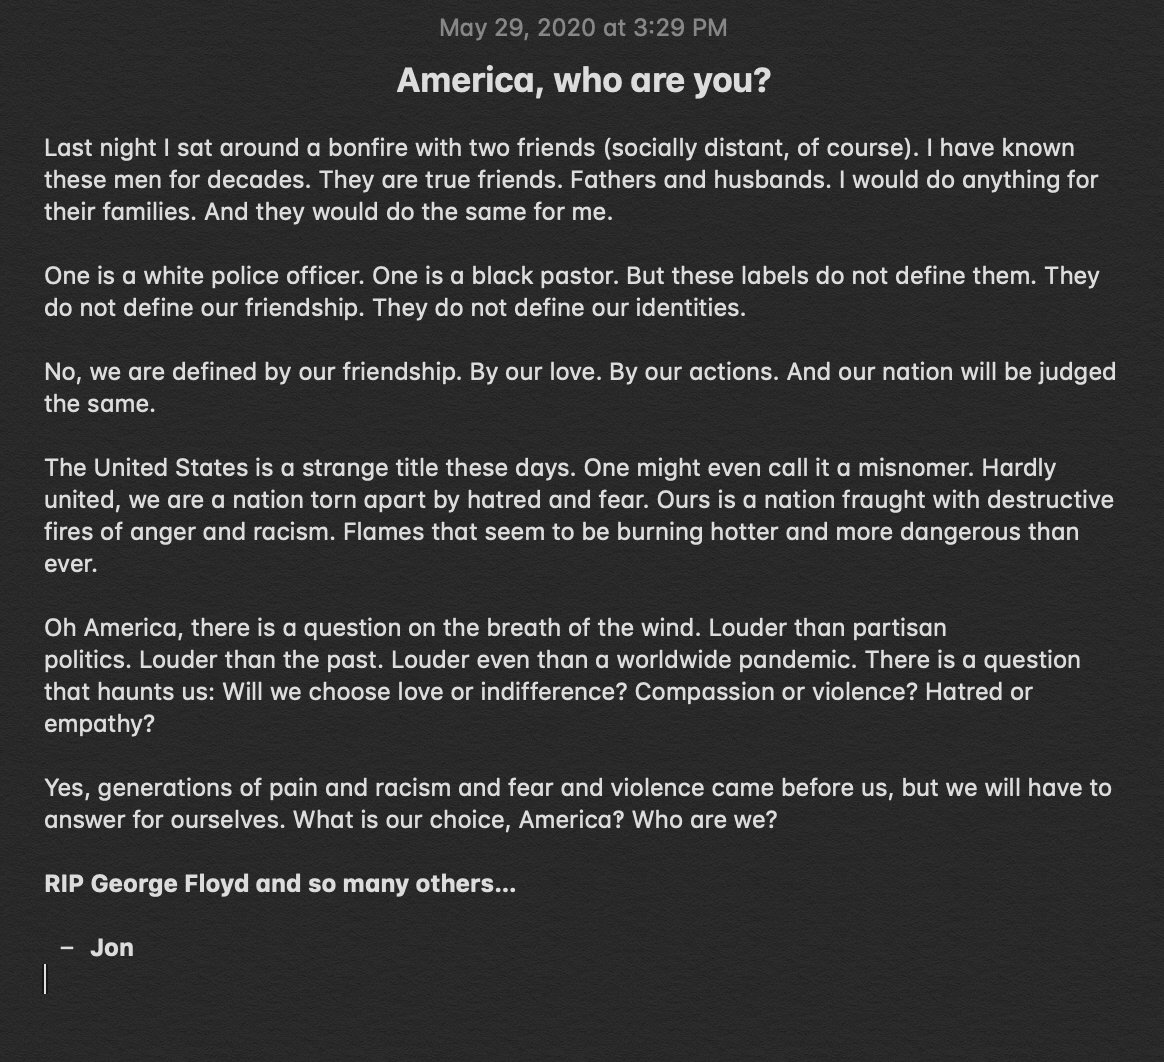 America, who are you?